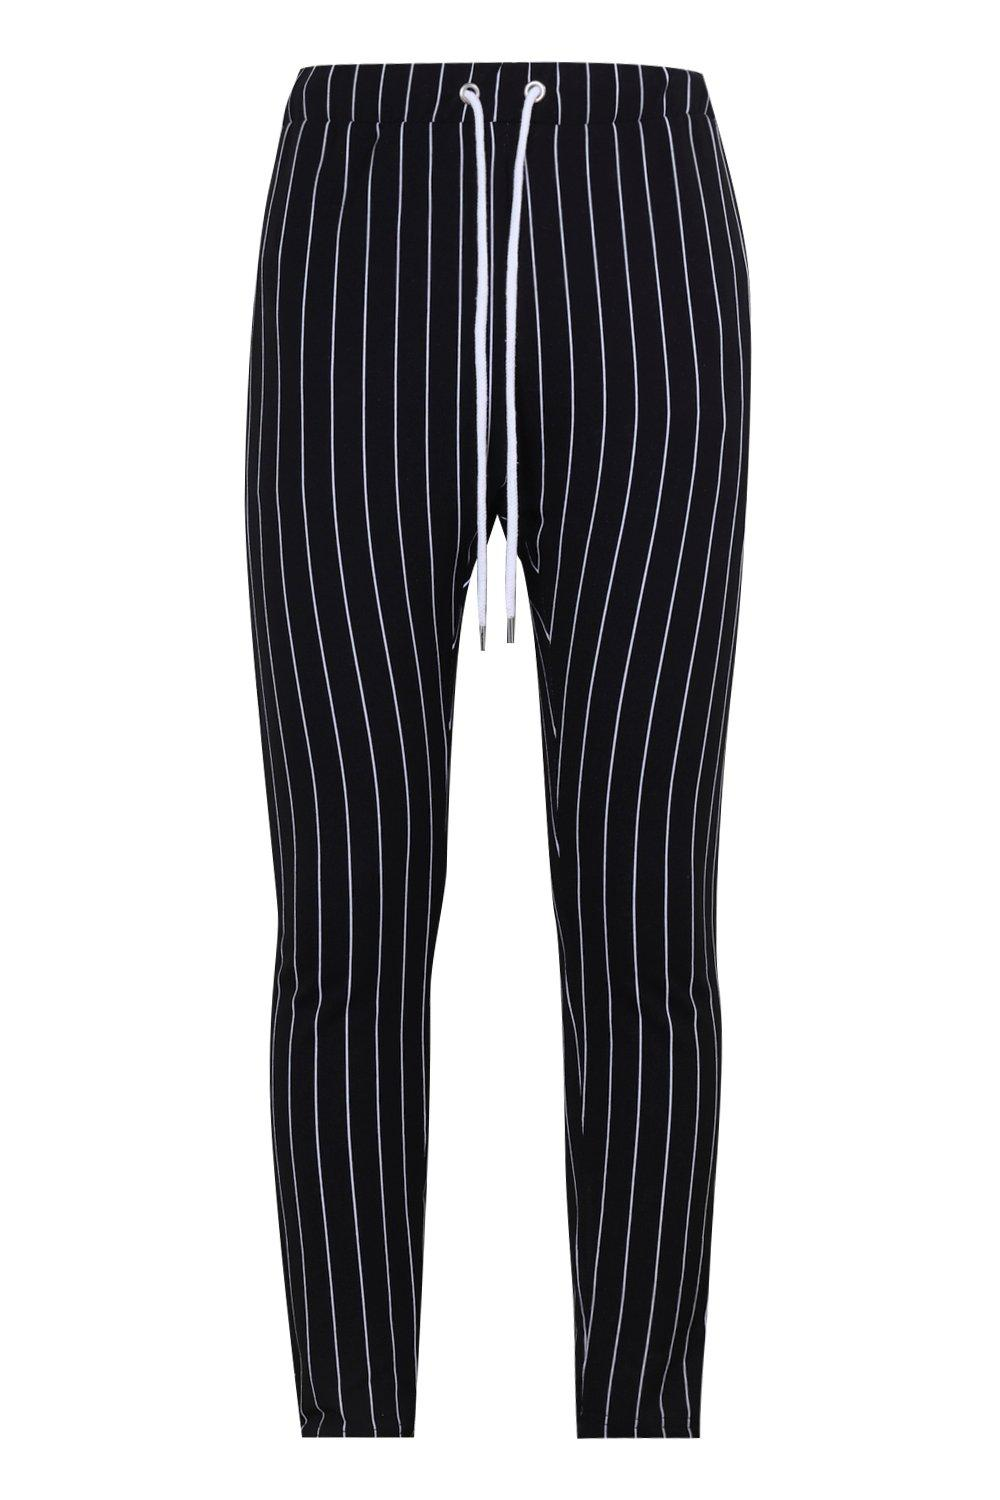 Skinny Fit Joggers Striped Skinny black Striped Joggers Fit black UFFgWBn